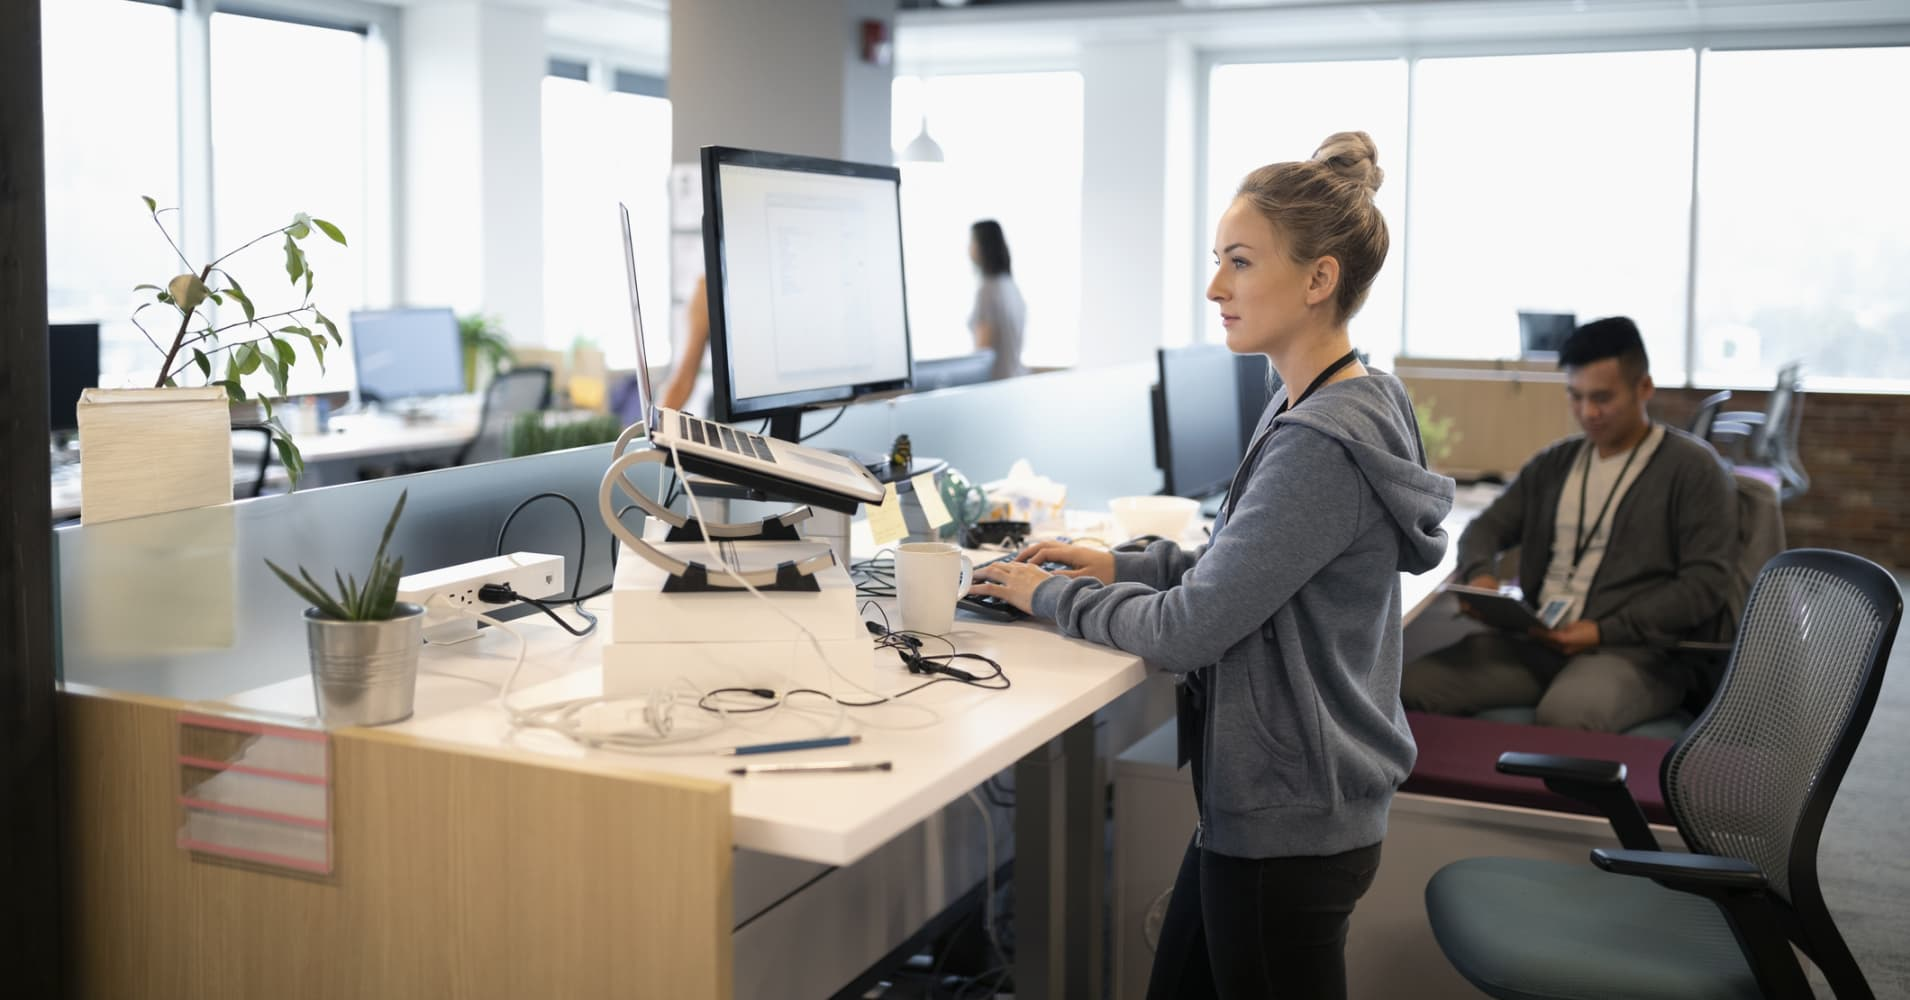 Creative businesswoman standing at desk, using laptop and computer in open plan office